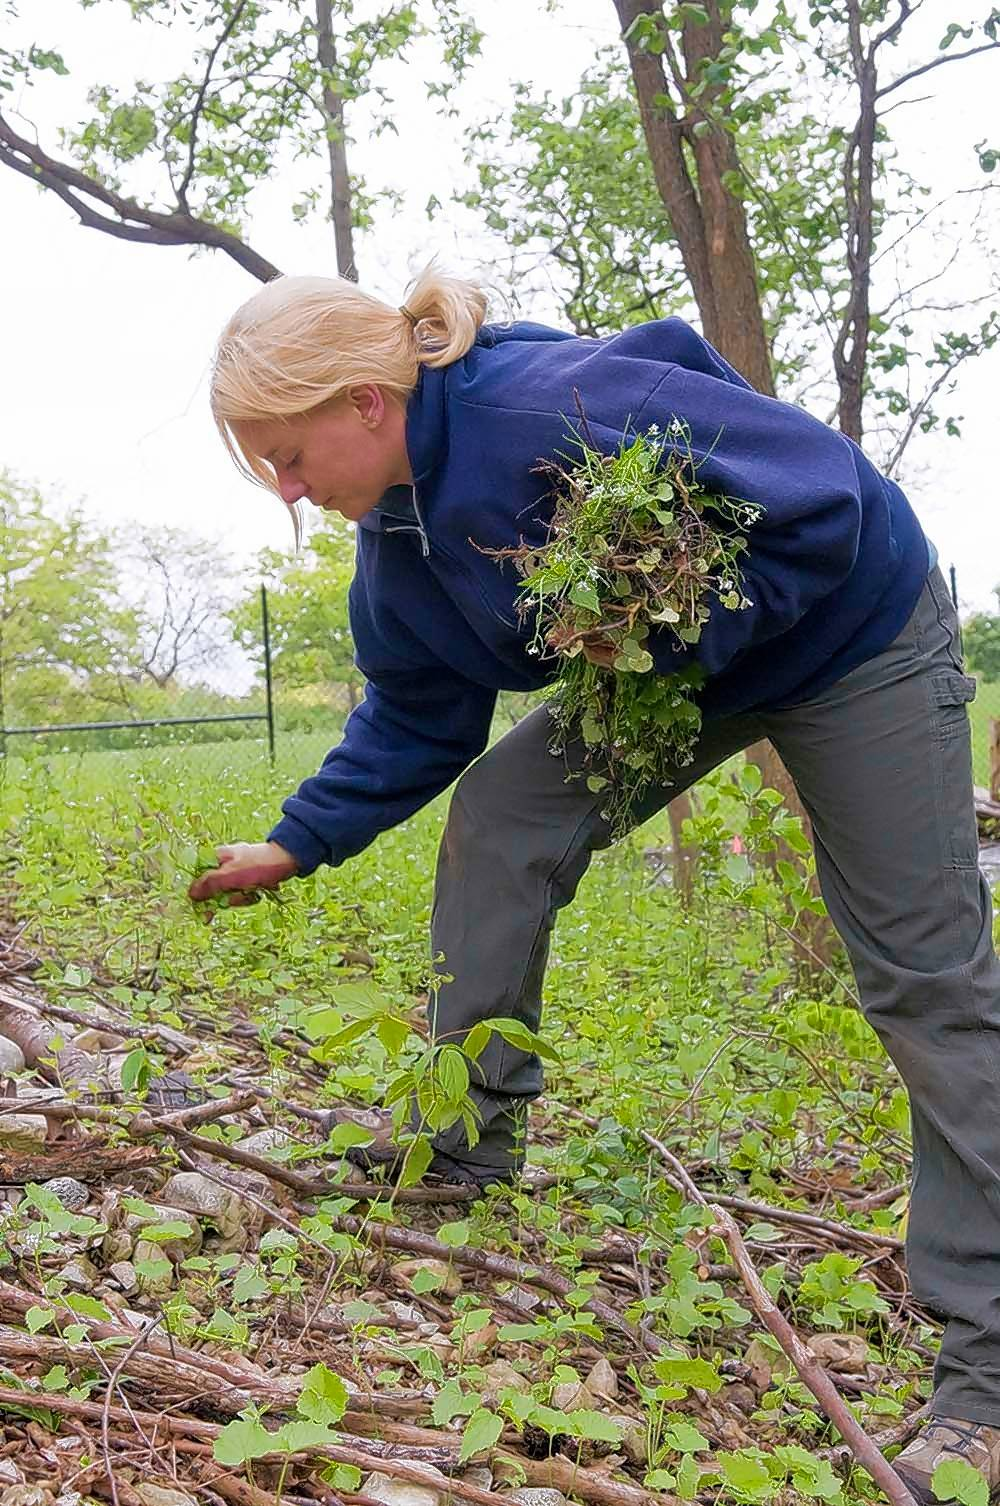 Be sure to hand pull garlic mustard that is flowering or setting seed now in your garden.